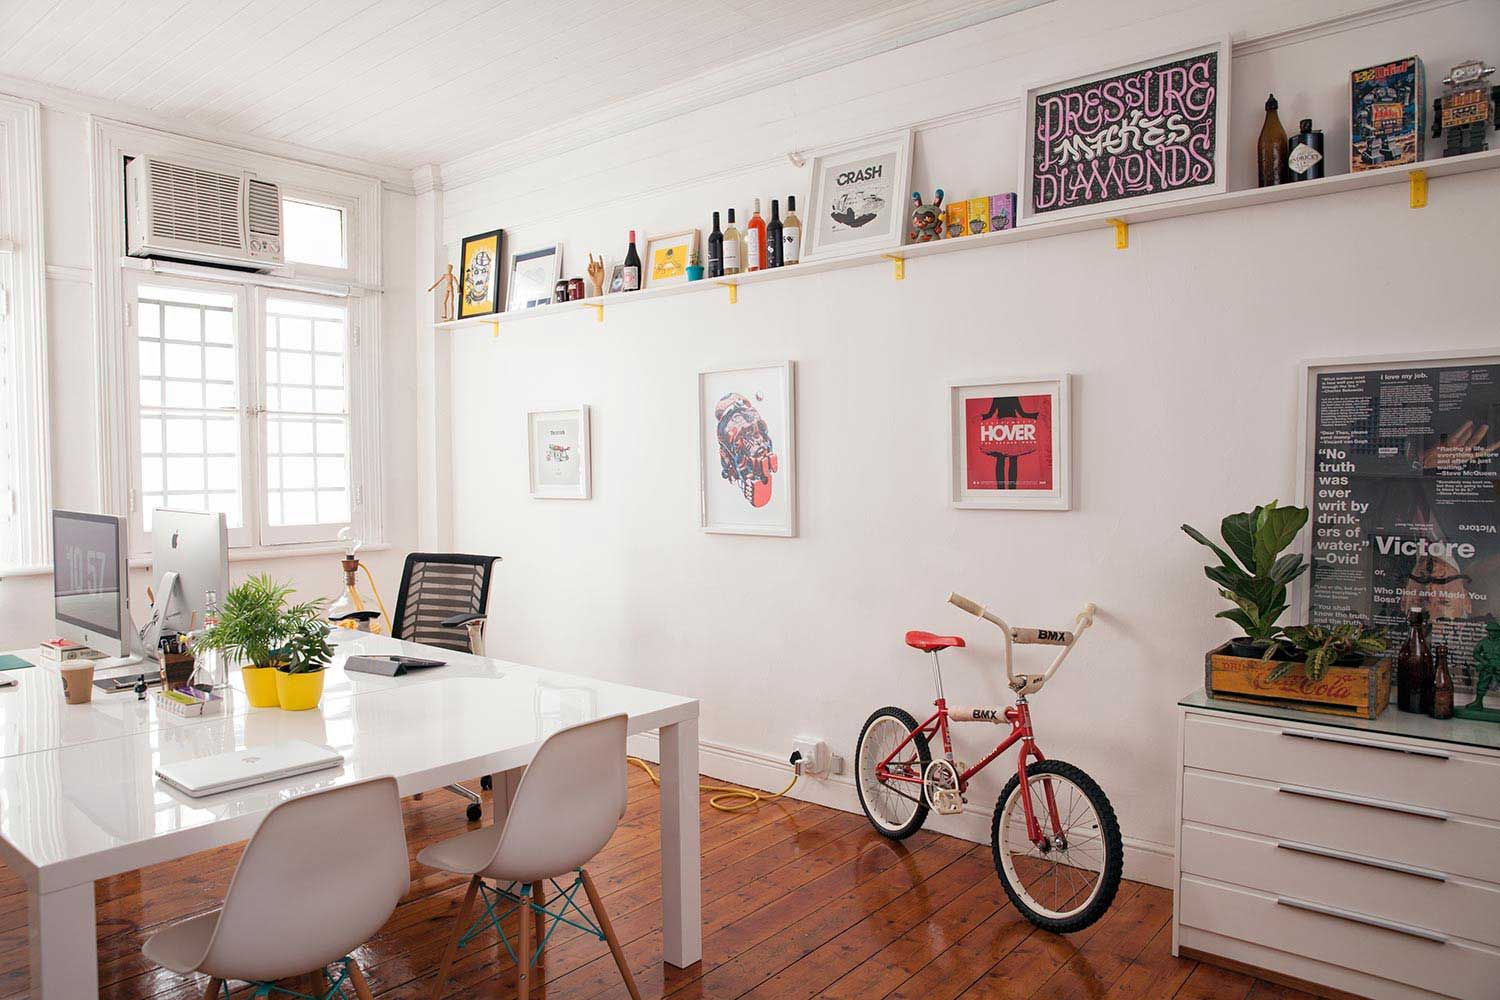 Studio Visit: MARK | Home | Design studio office, Interior ...